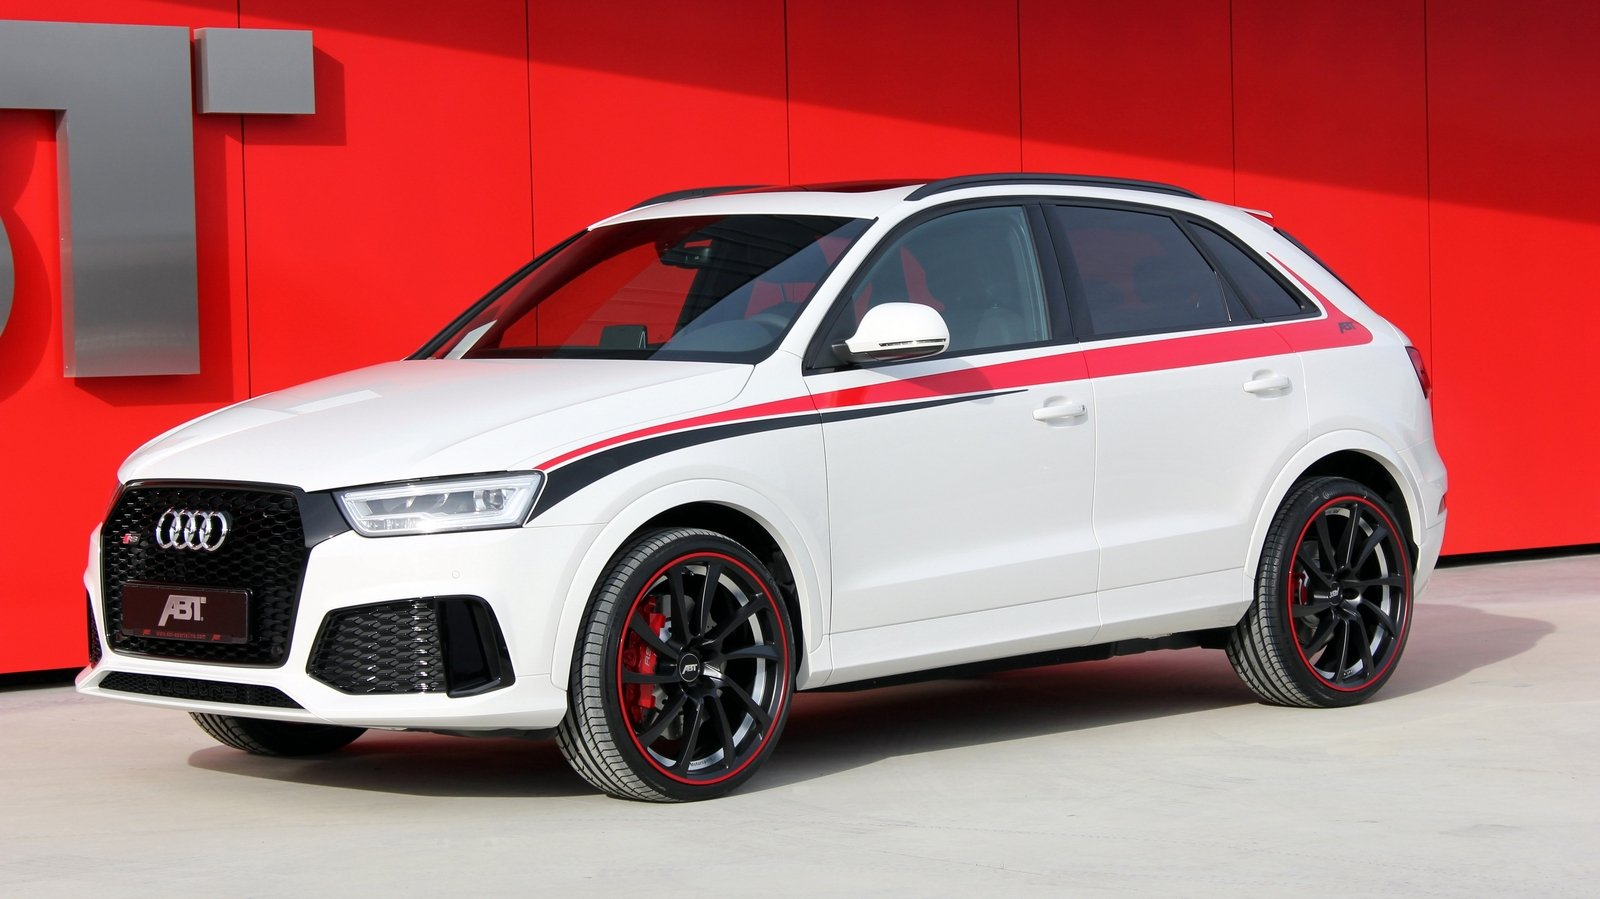 2016 audi rs q3 by abt sportsline review top speed. Black Bedroom Furniture Sets. Home Design Ideas